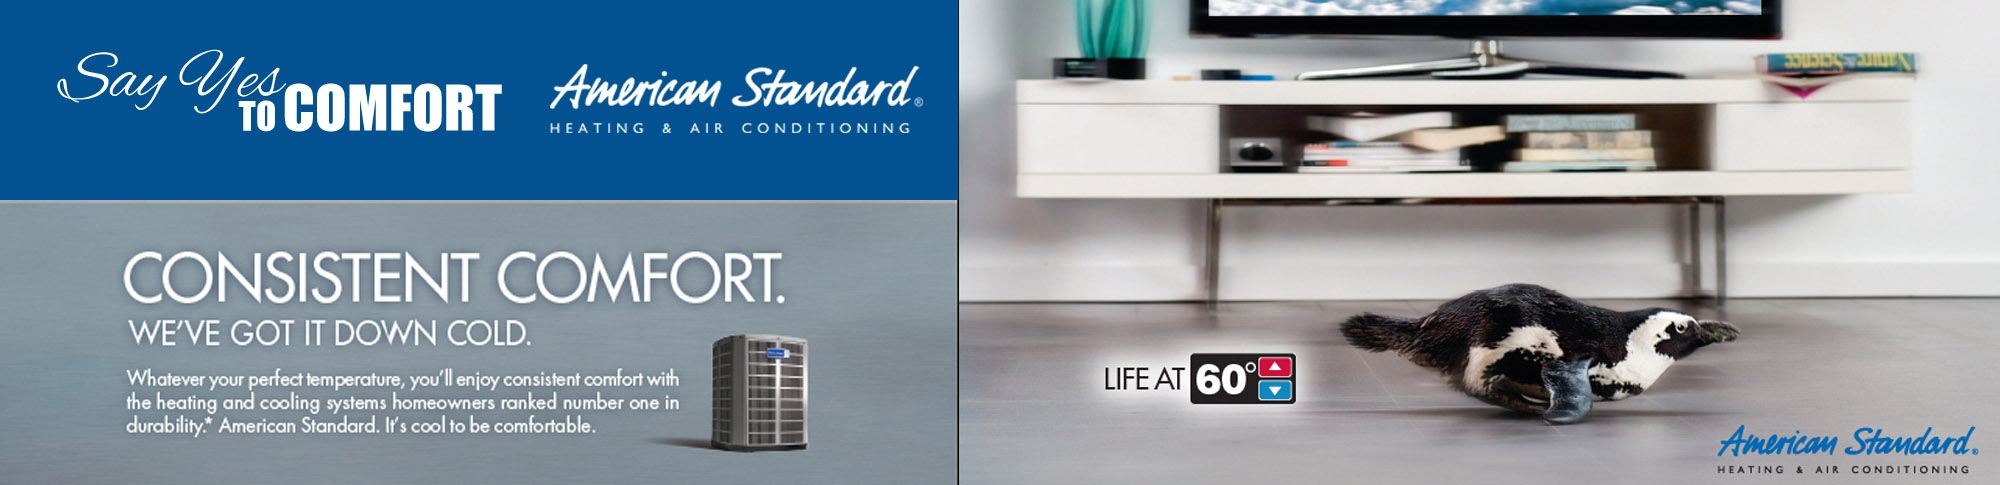 Get consistent comfort with American Standard AC products.